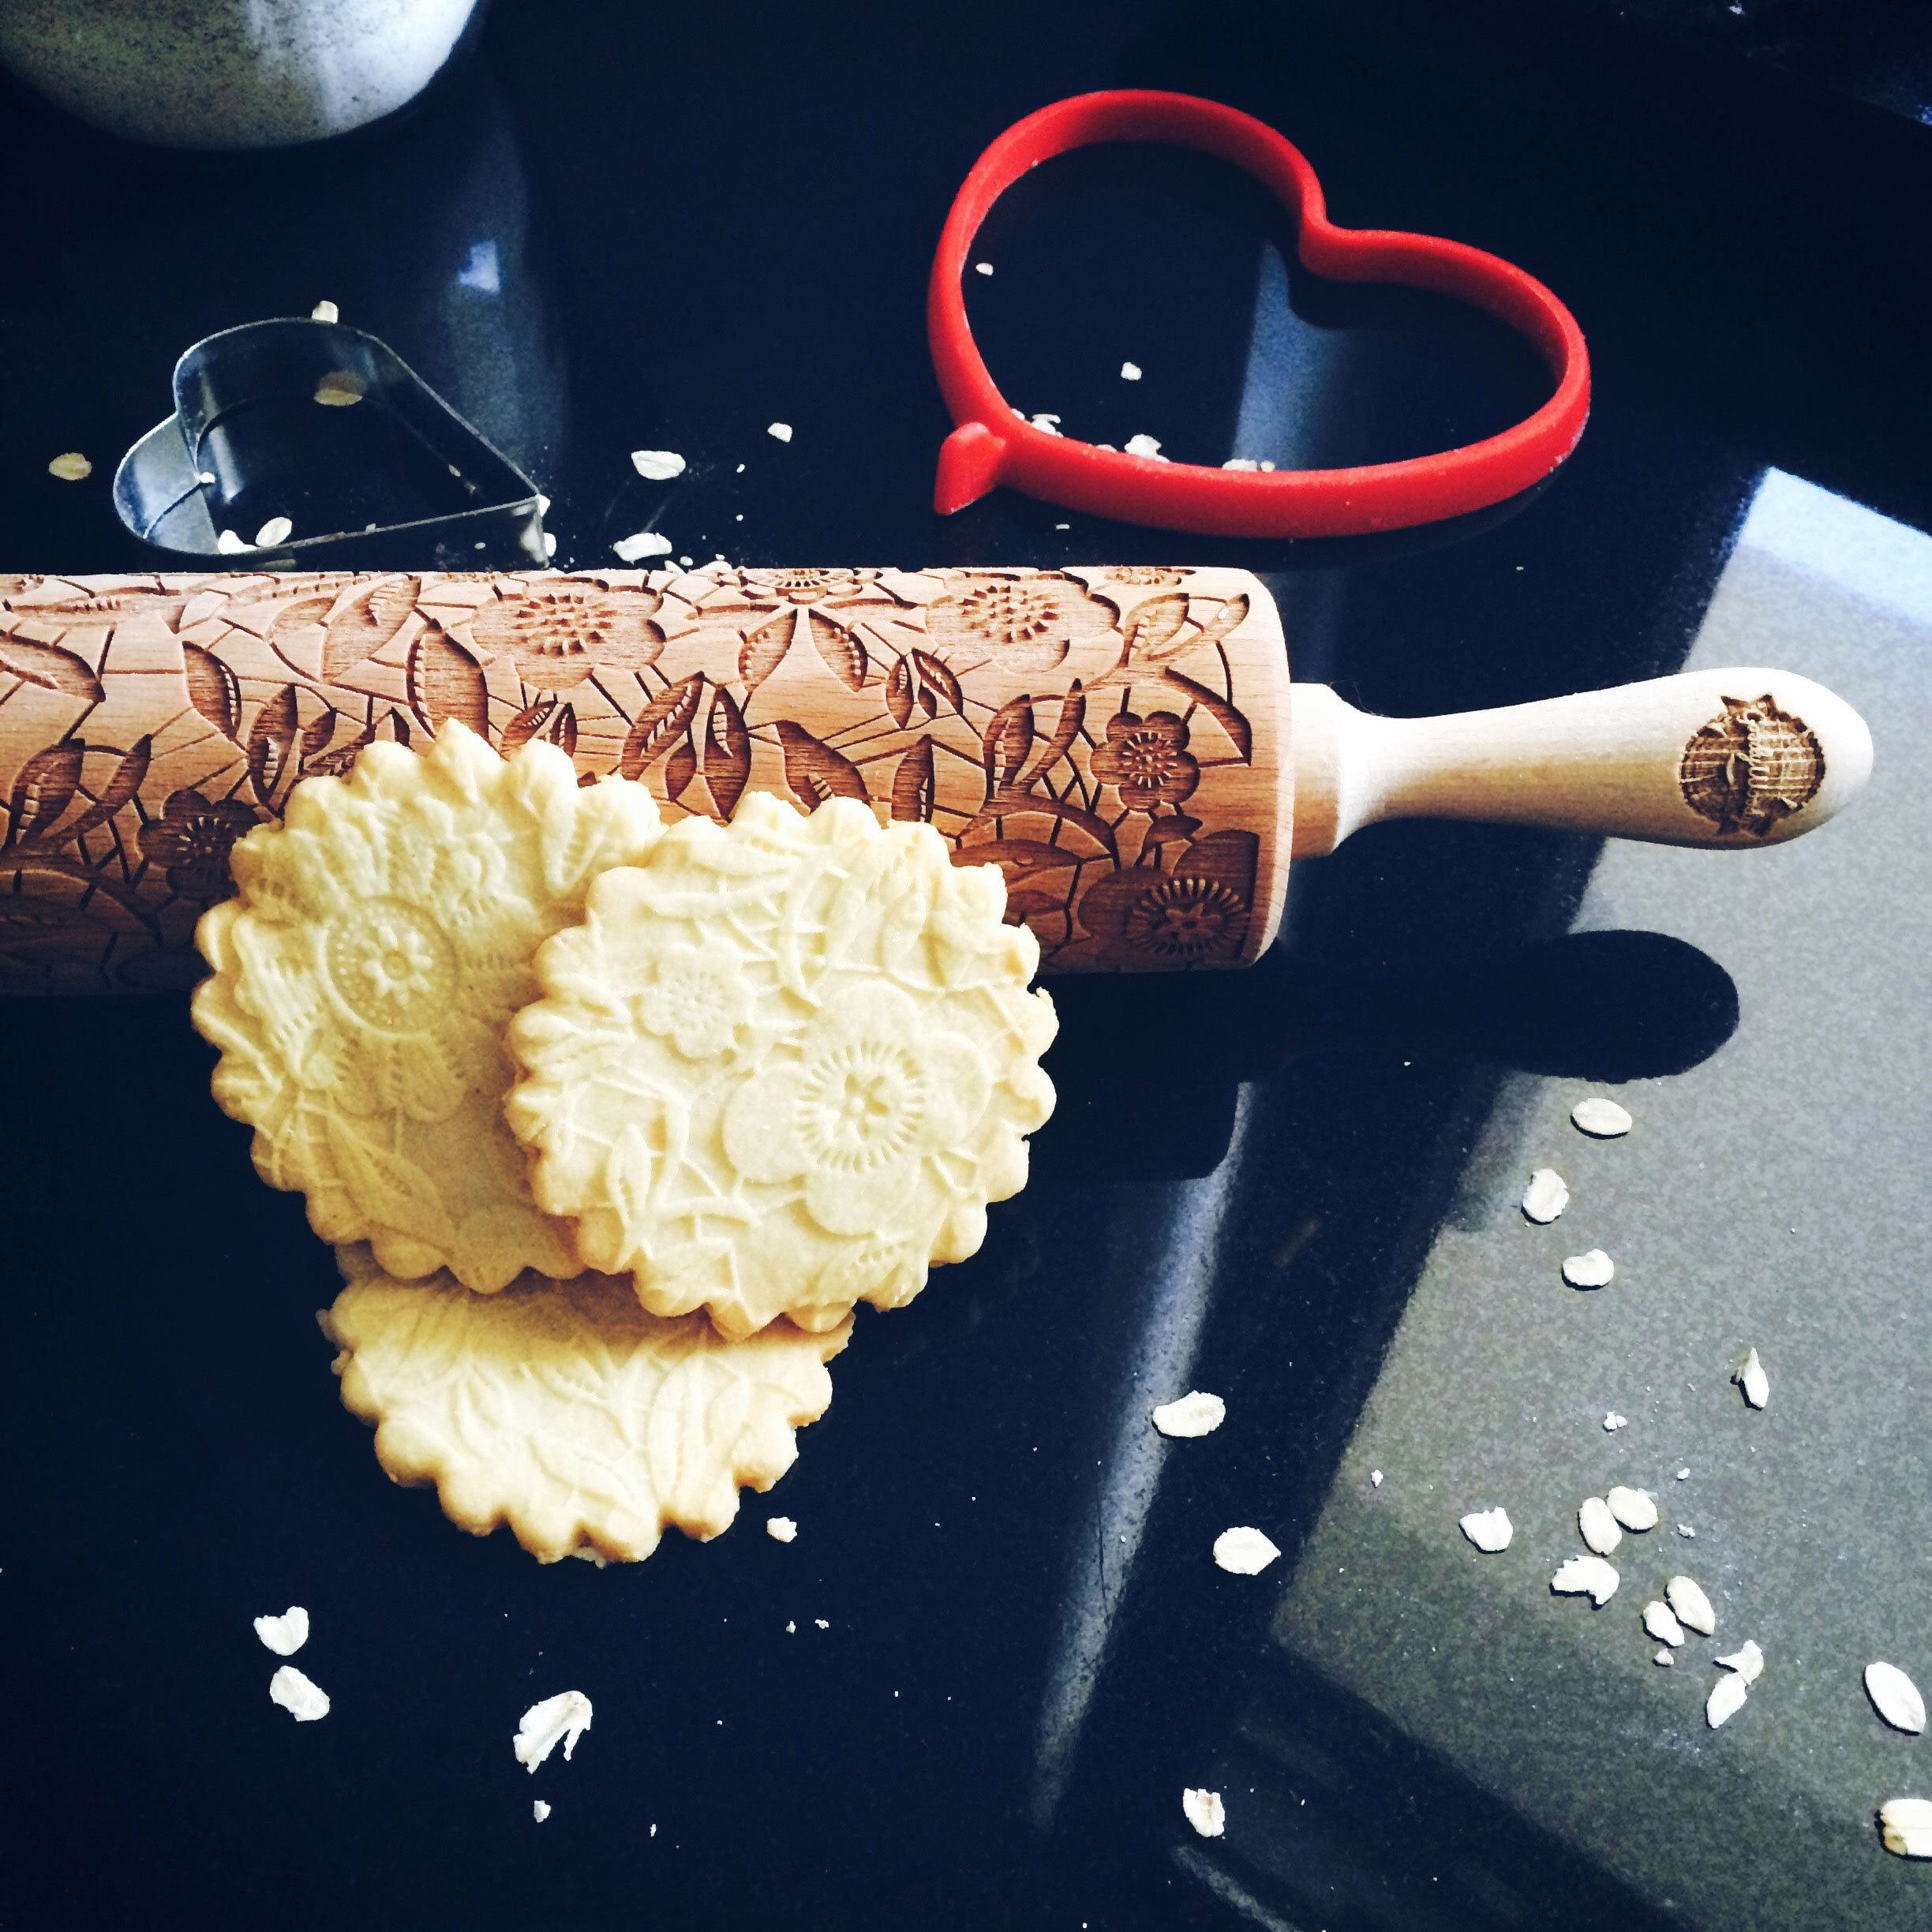 Pastrymade FLOWERS ROLLING PIN Pastry Tool and Baking Utensil for Homemade Cookies